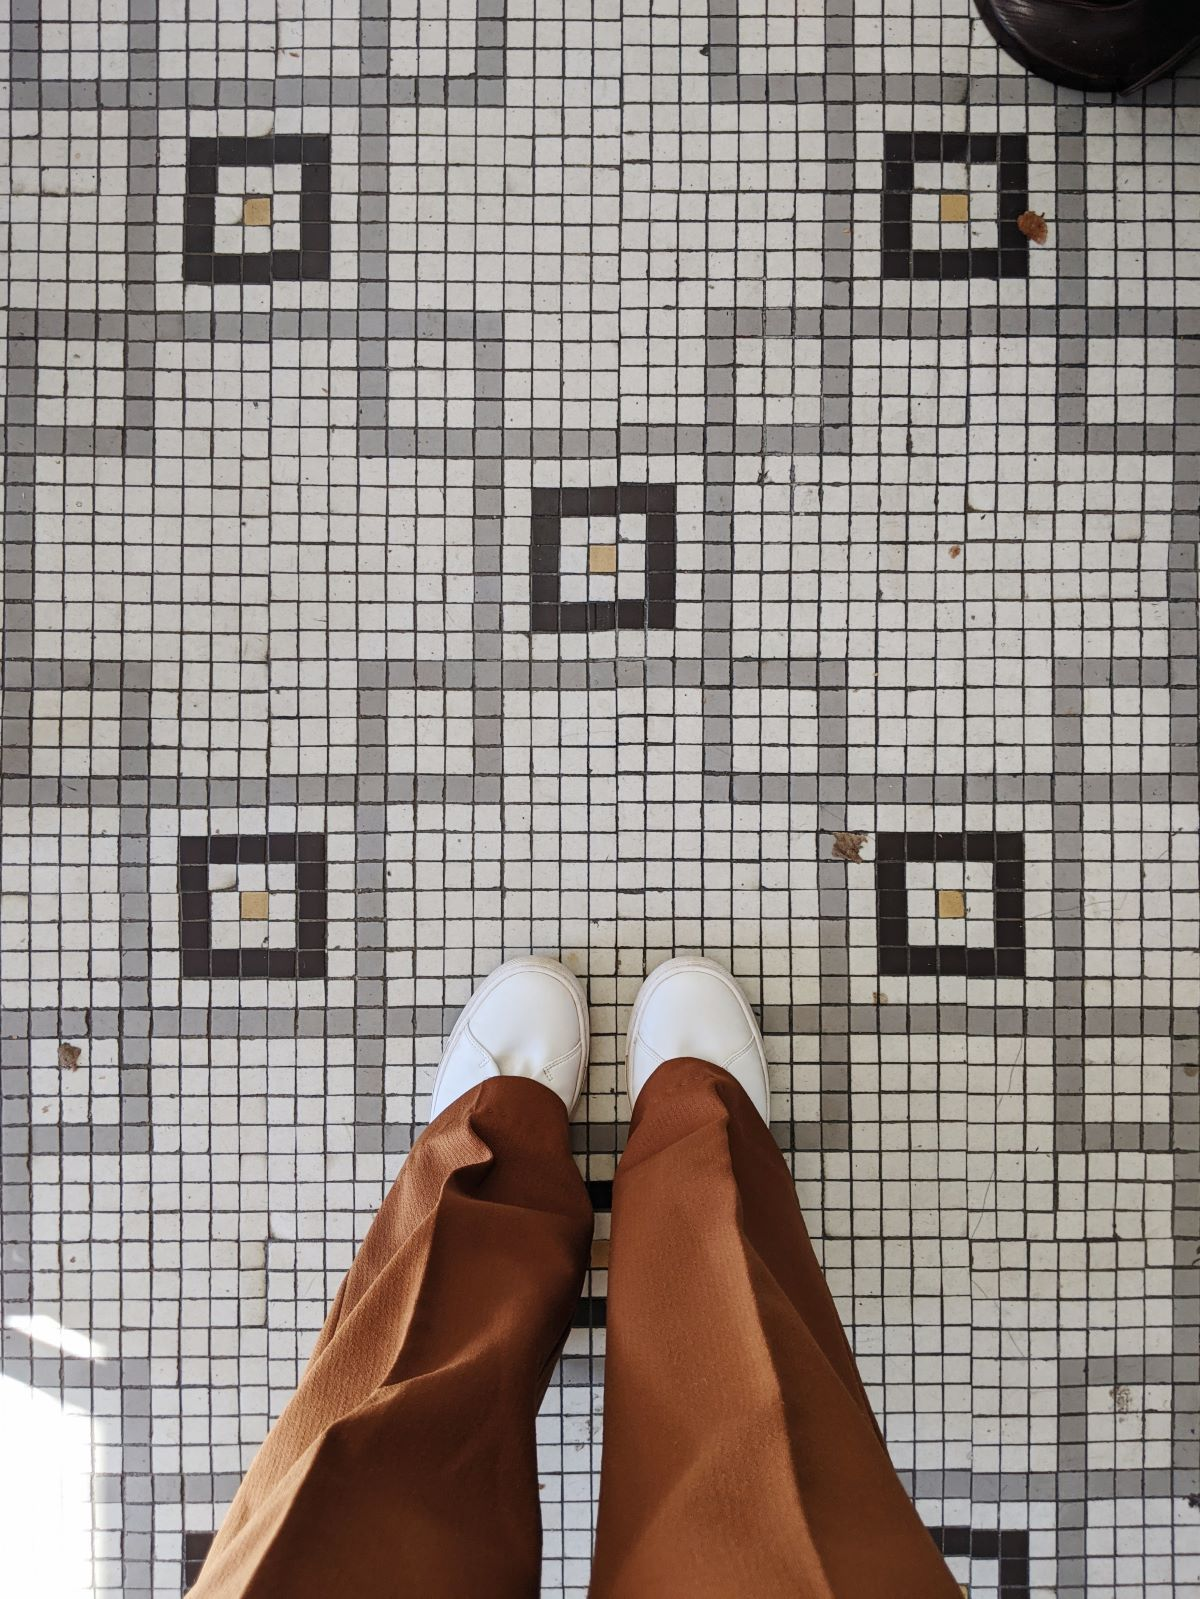 wearing the Scooter One shoes with pleated pants on a tiled floor